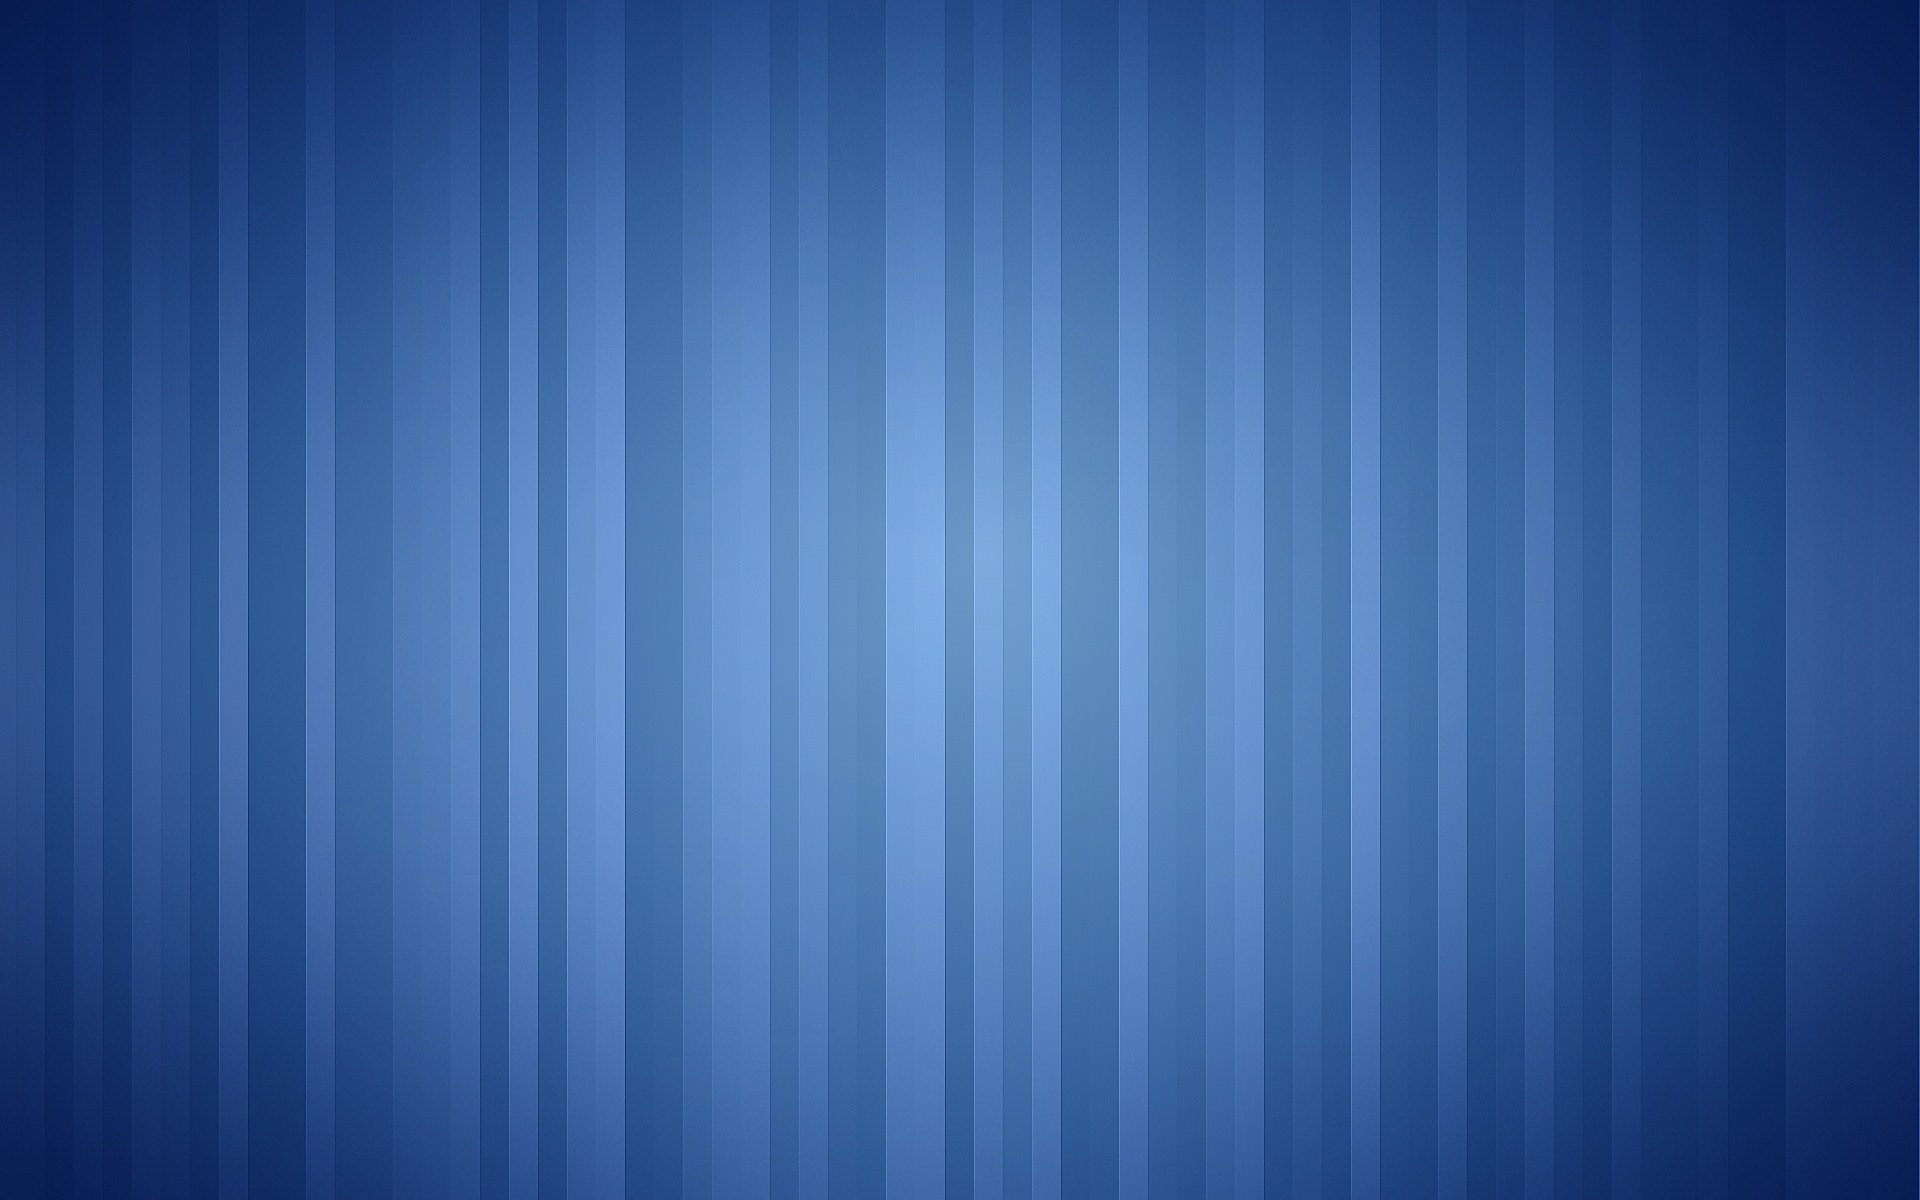 plain blue background - photo #41